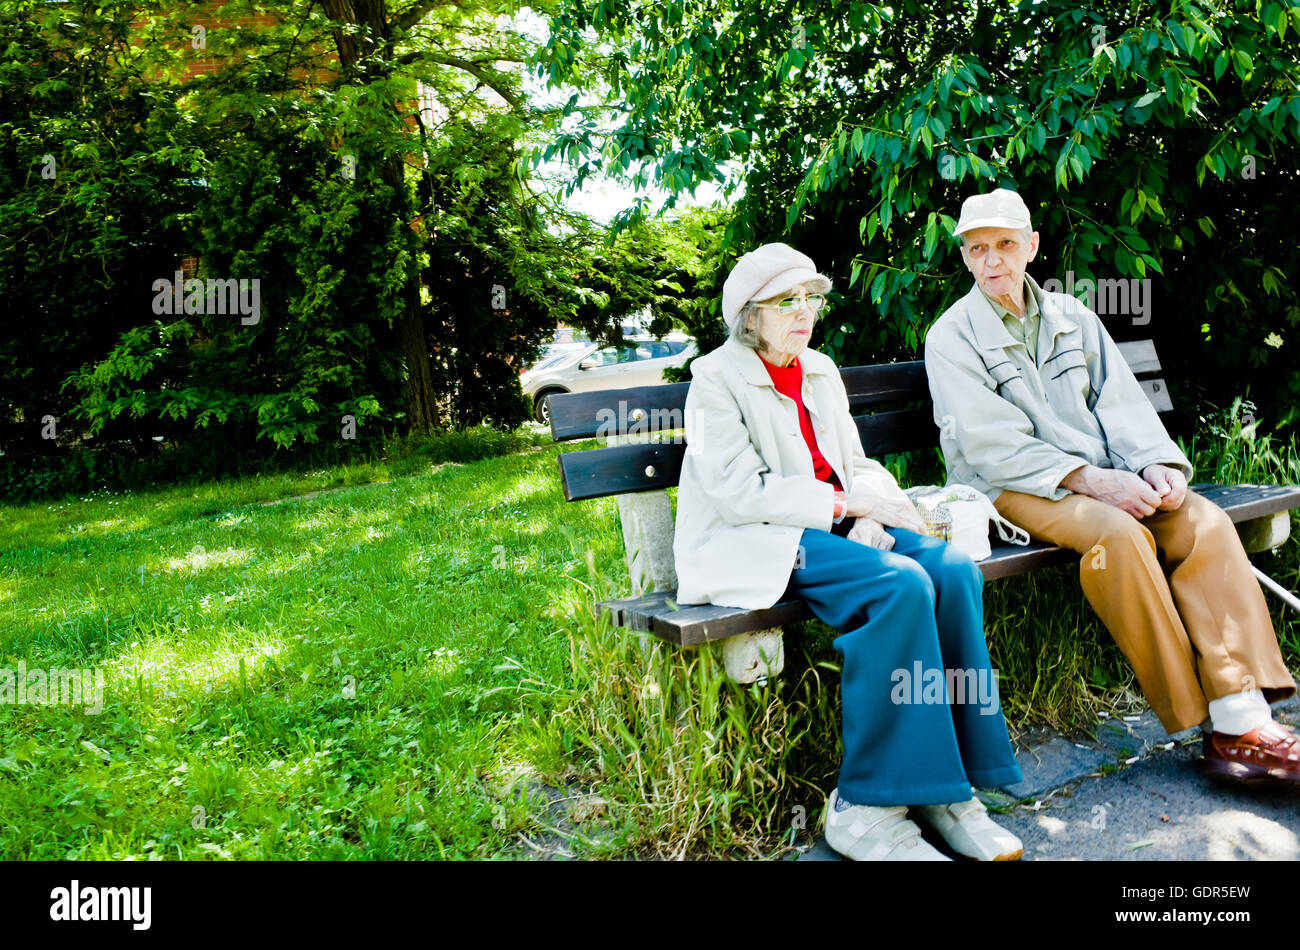 Couple de personnes sur un banc Photo Stock